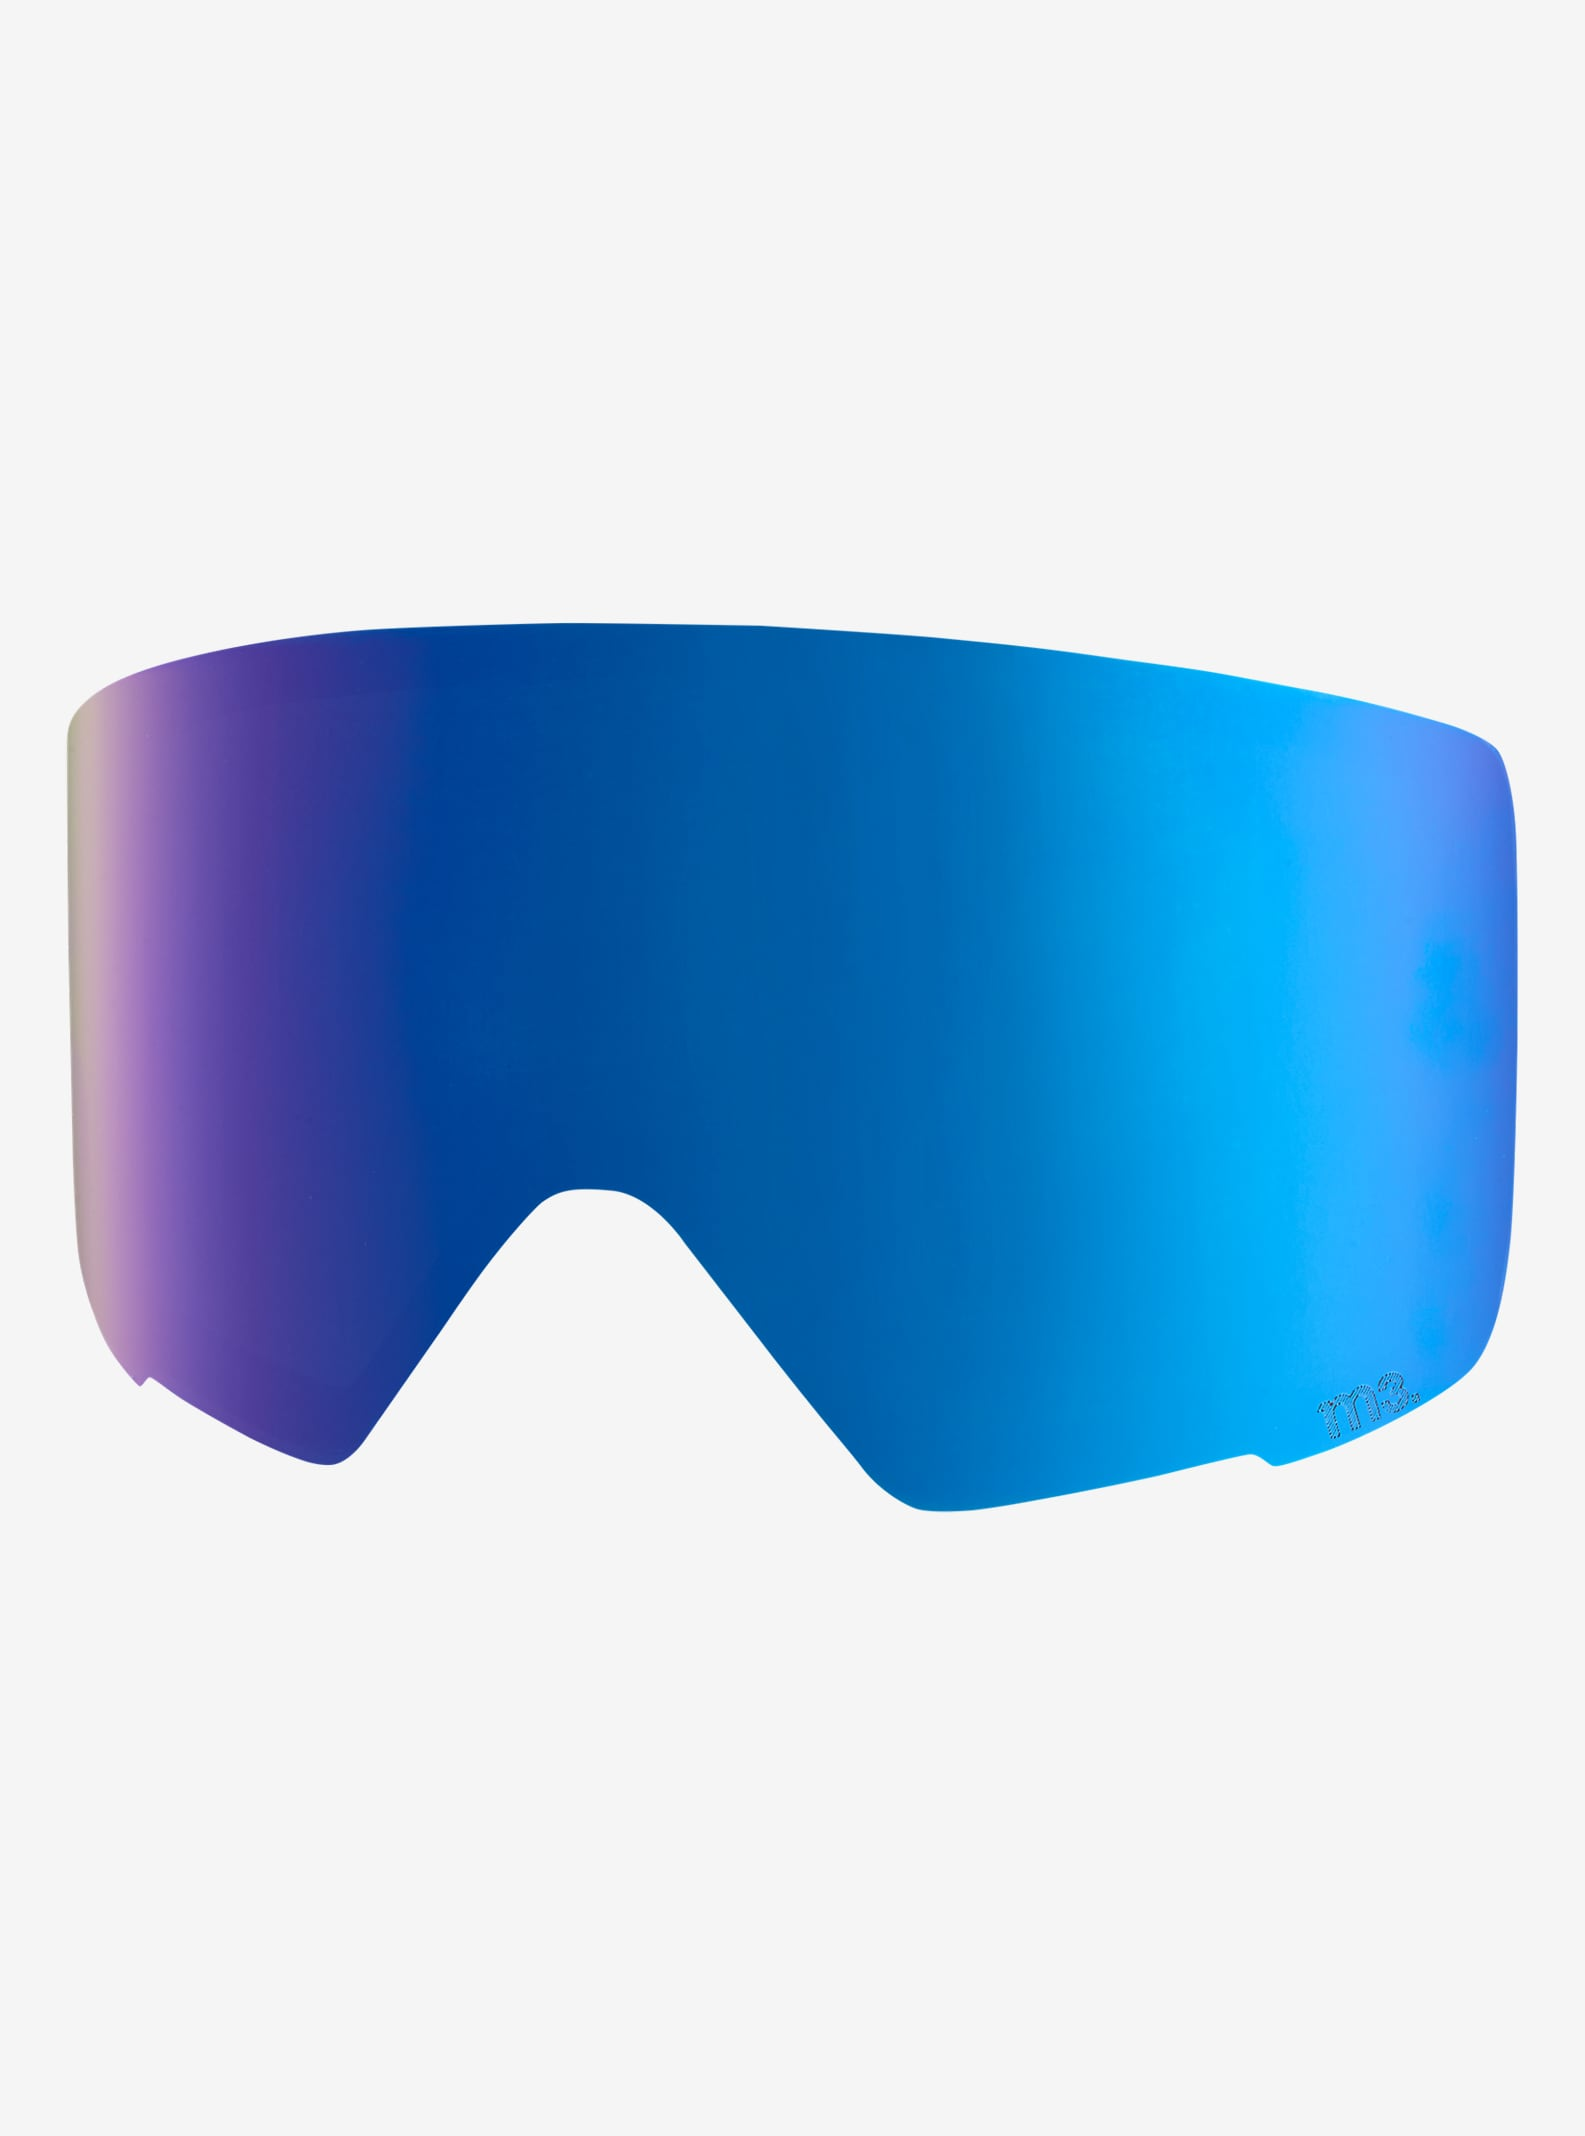 Men's Anon M3 Lens shown in Blue Cobalt (6% VLT)